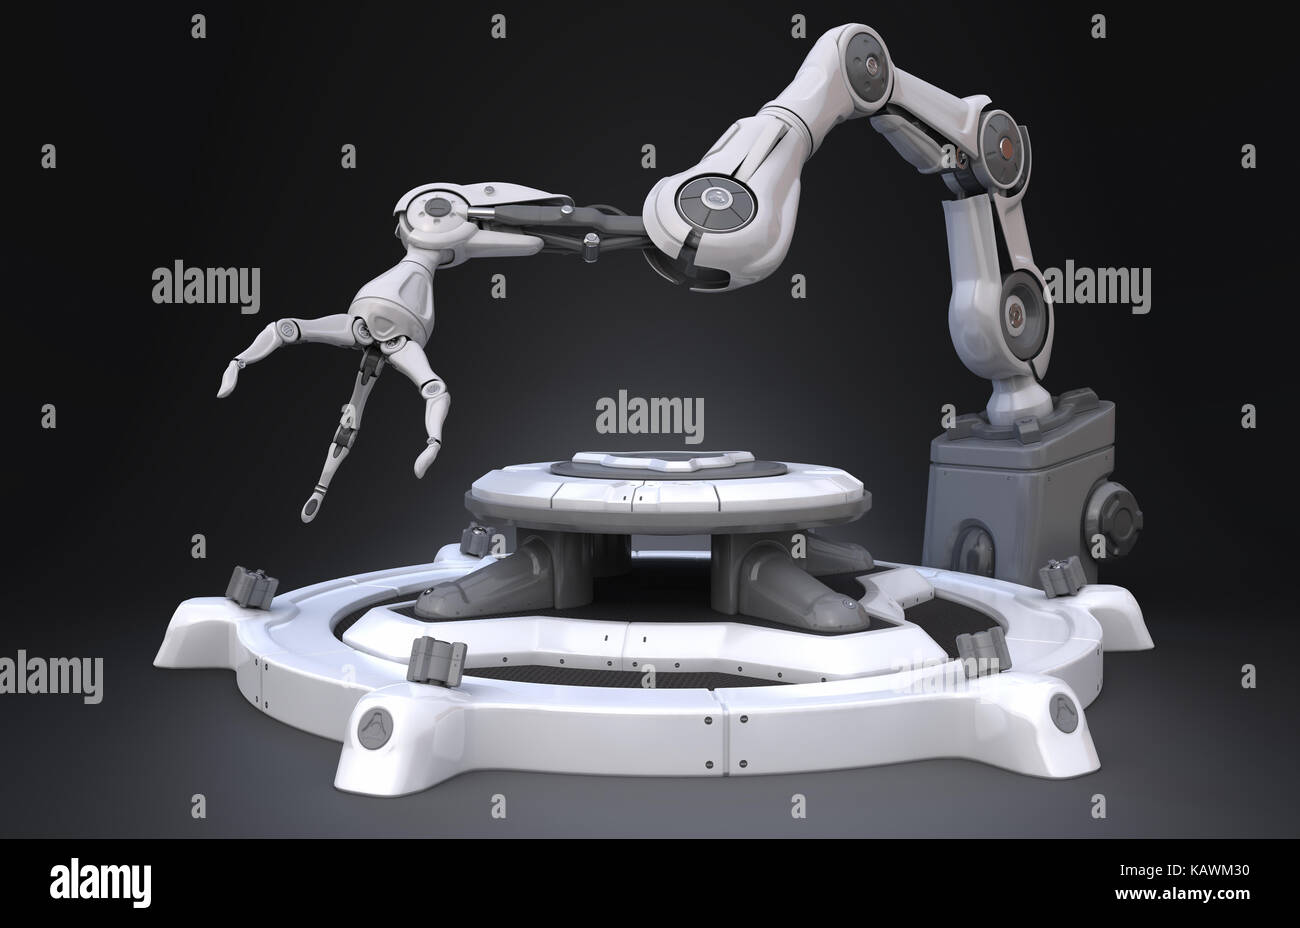 Sci-Fi Industrial robot arm.3D illustration - Stock Image